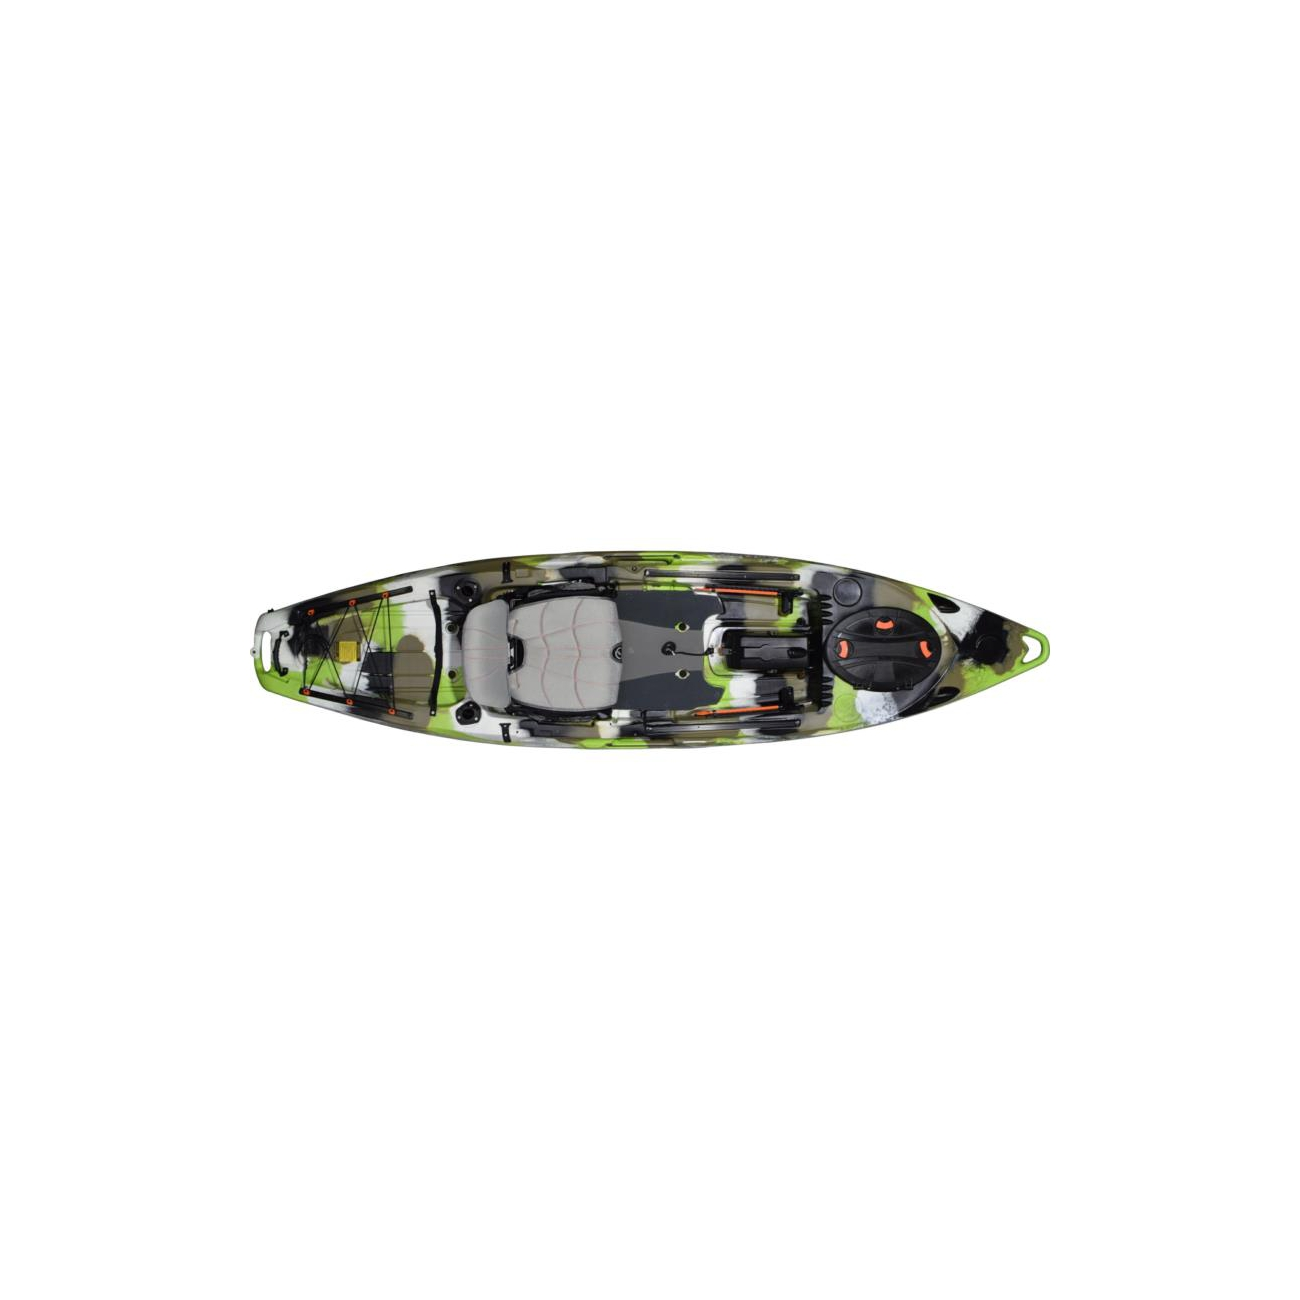 https://feelfreekayak.eu/660-small_default/lure-115-v2-winter-camo.jpg